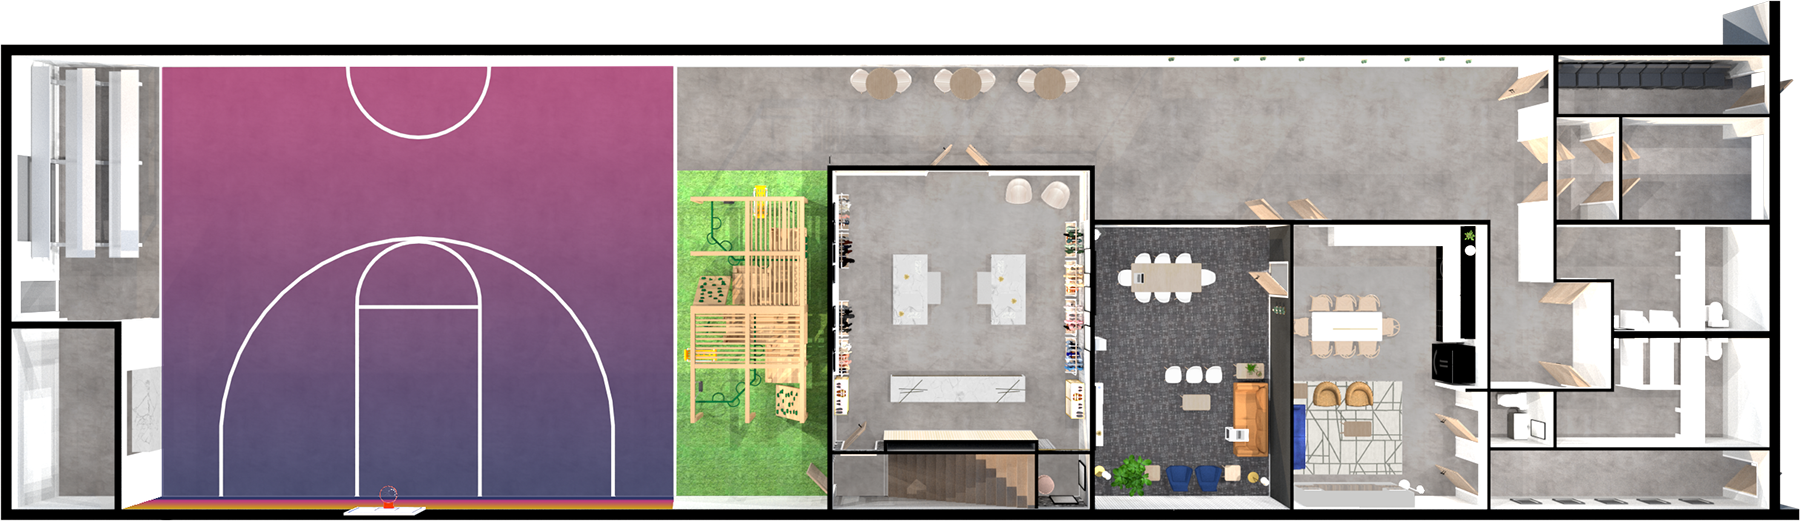 Building floor plan rendering